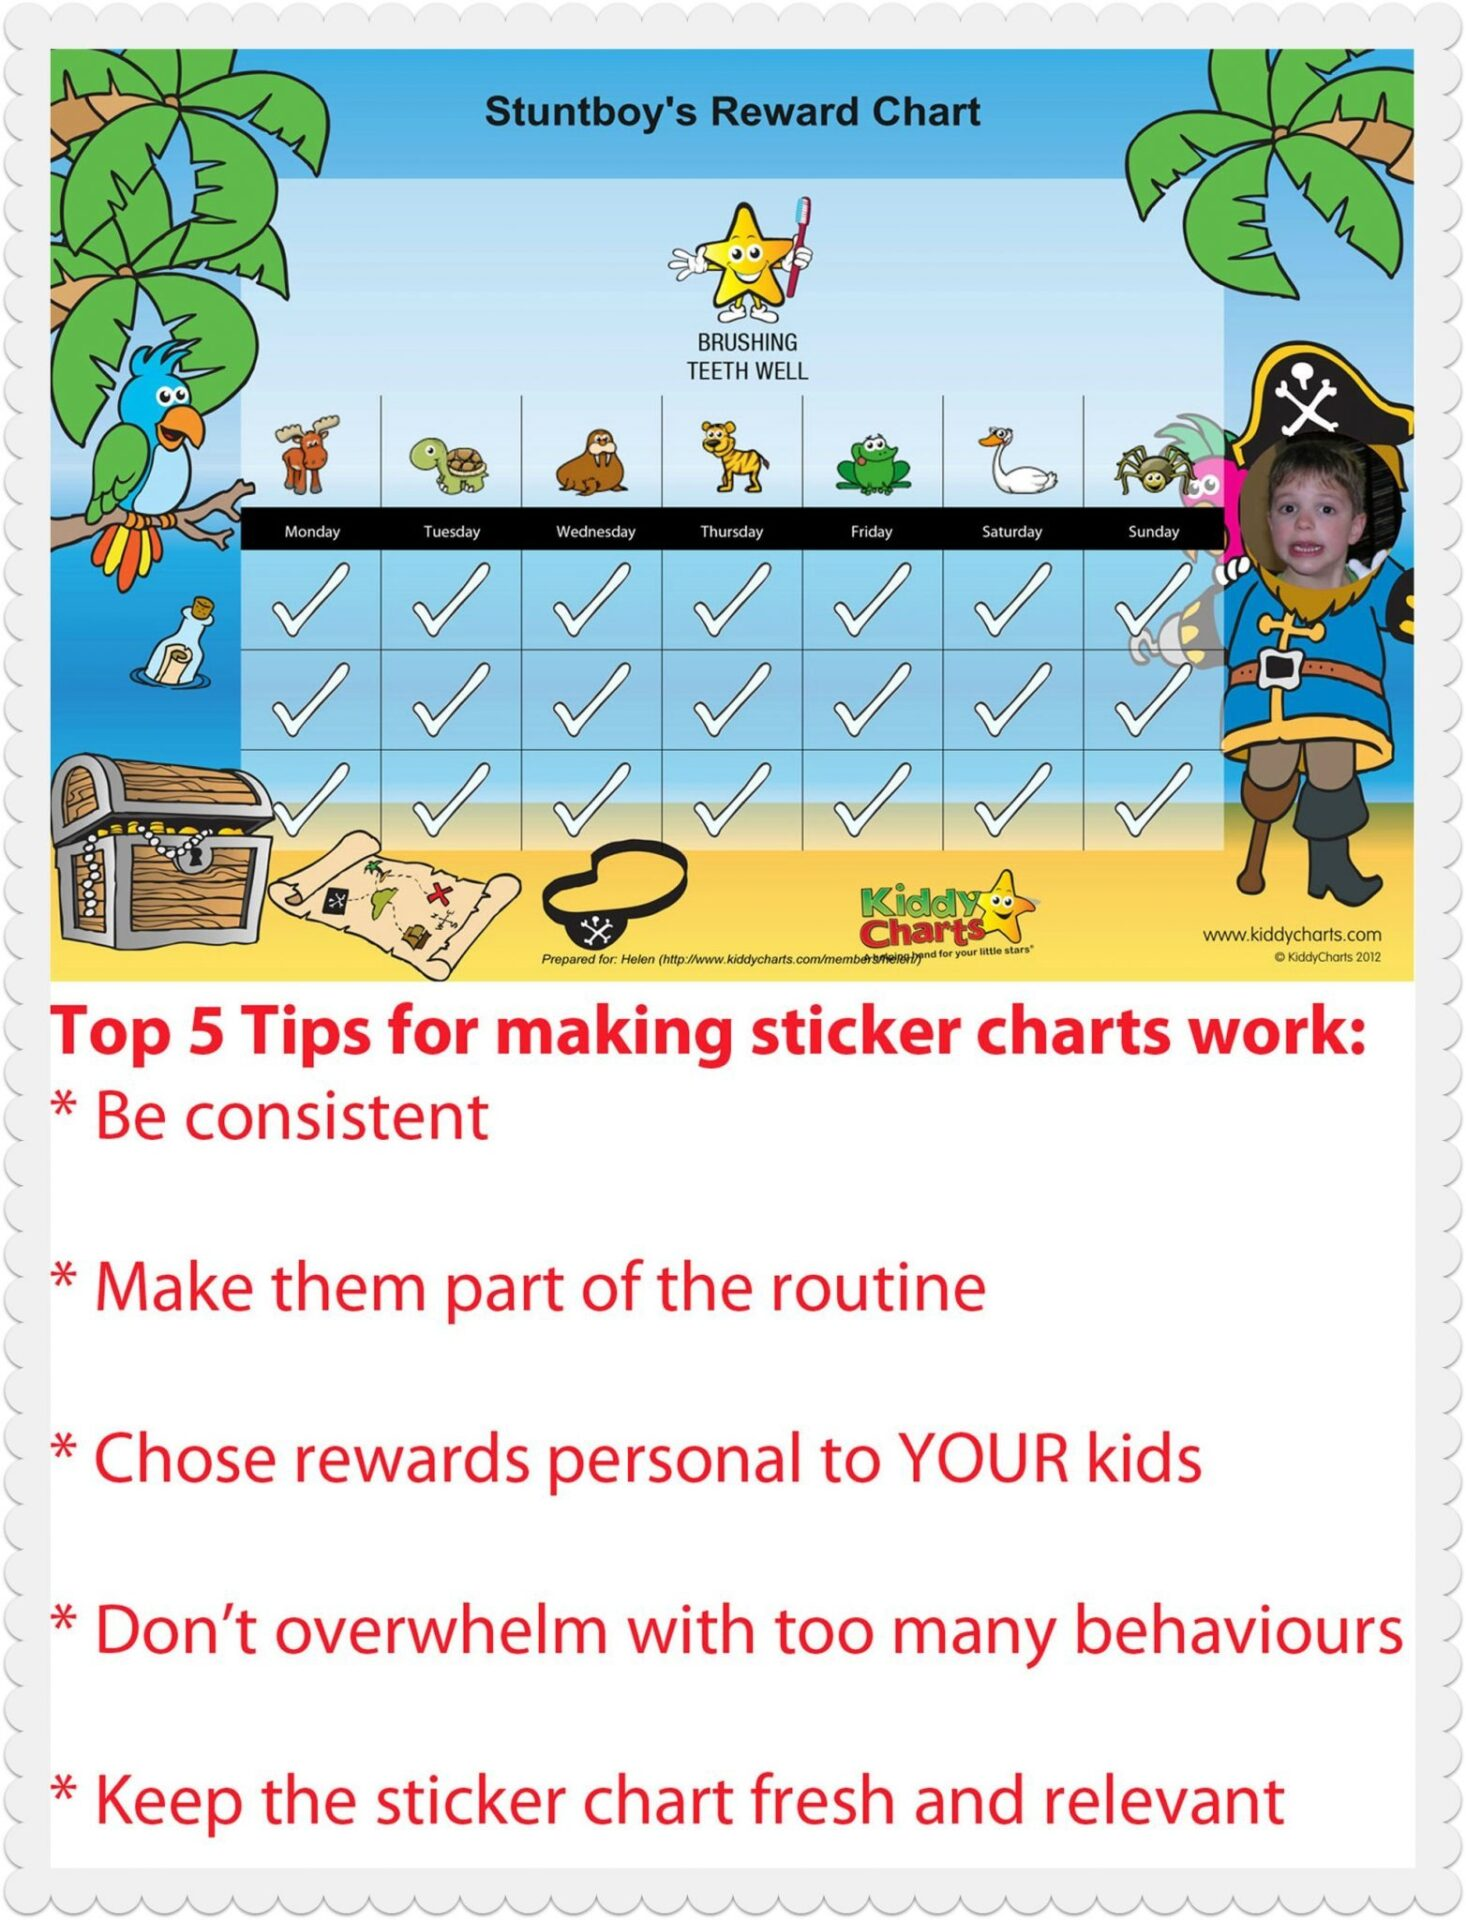 Top five tips for making sticker charts work